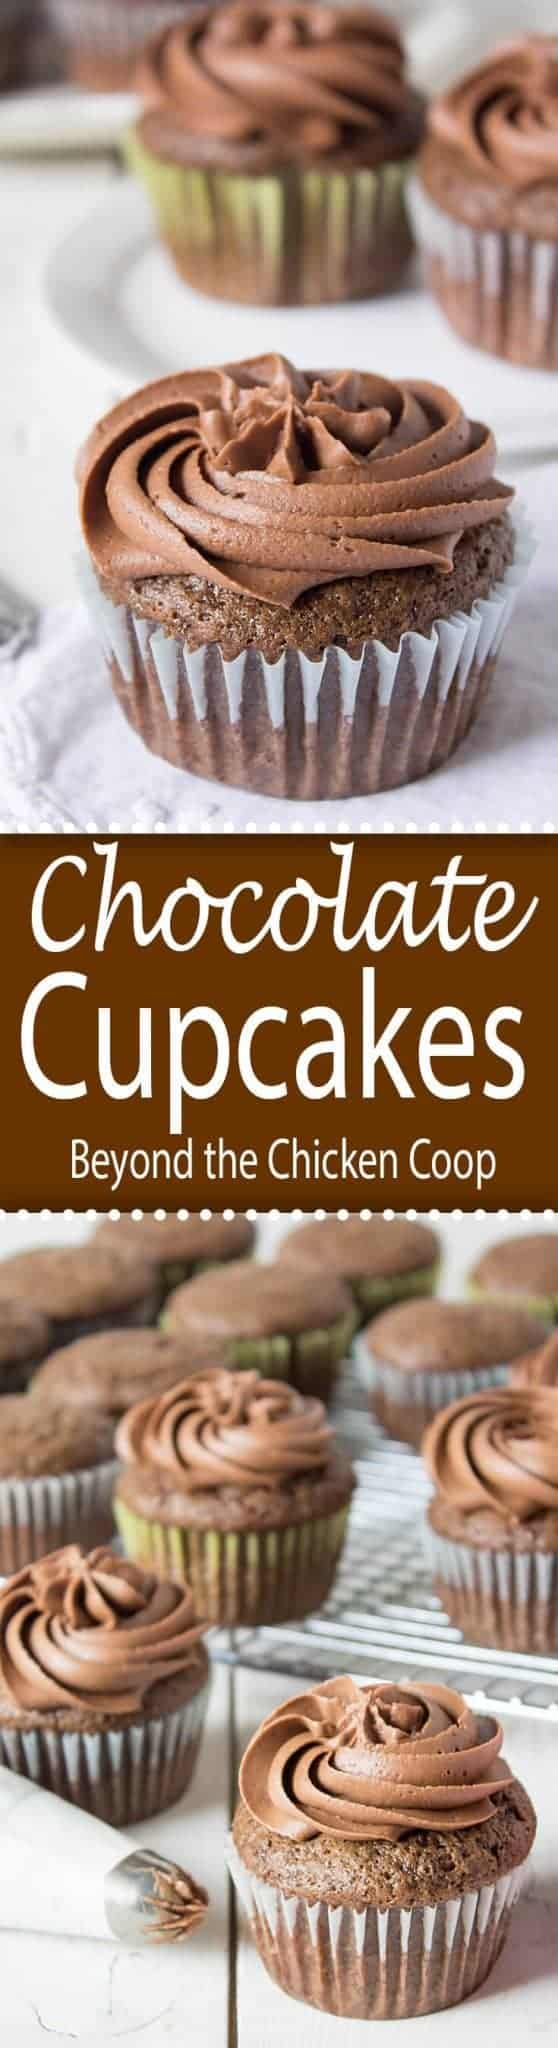 These chocolate cupcakes are made super moist with a secret ingredient...mayonnaise. Chocolate mayonnaise cupcakes will be your new favorite!